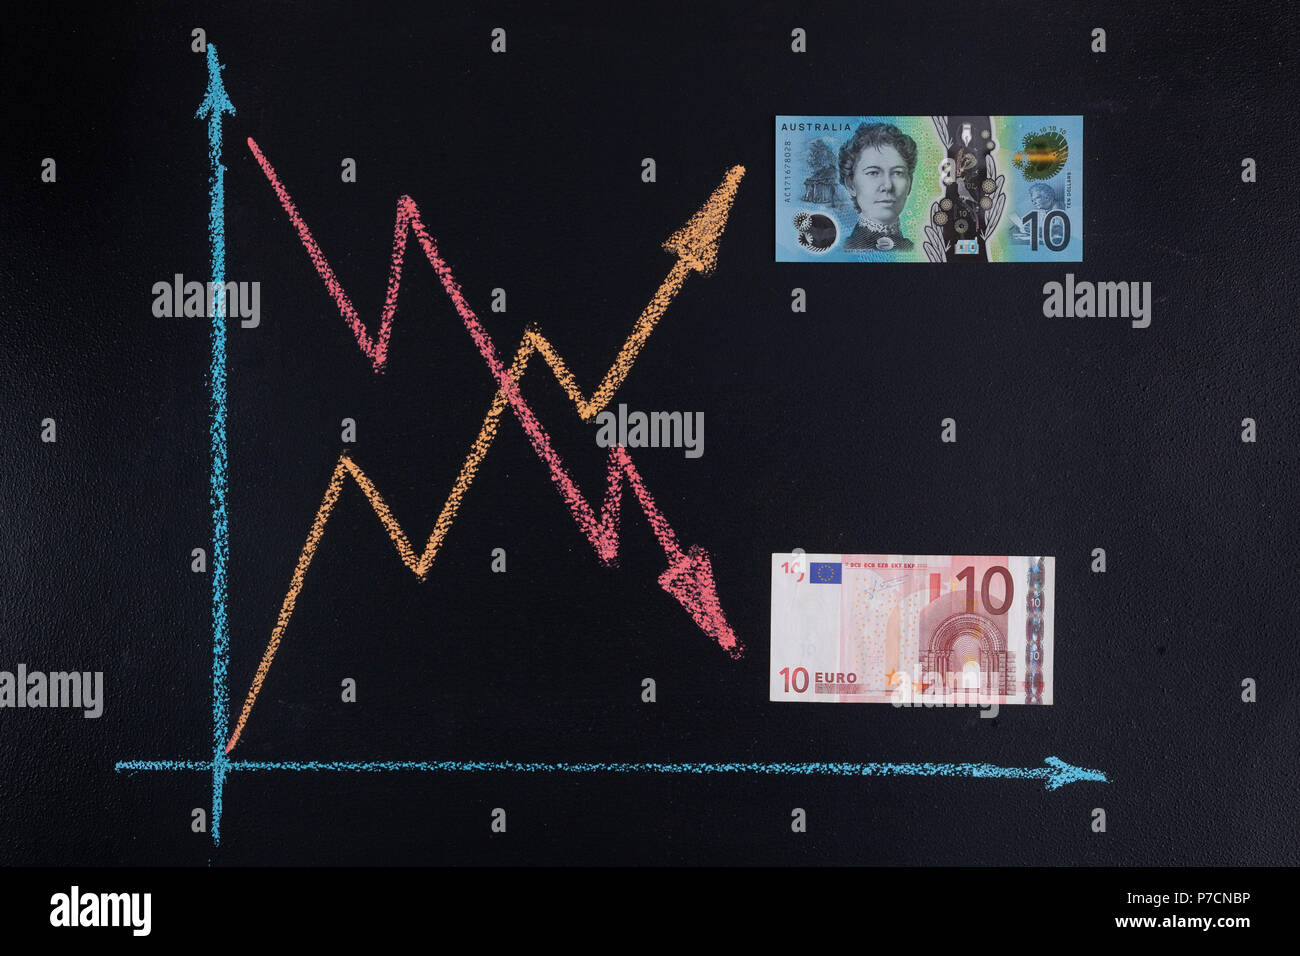 Aus Euro Forex Currency Trends Concept Eur Going Down While Aud Going Up